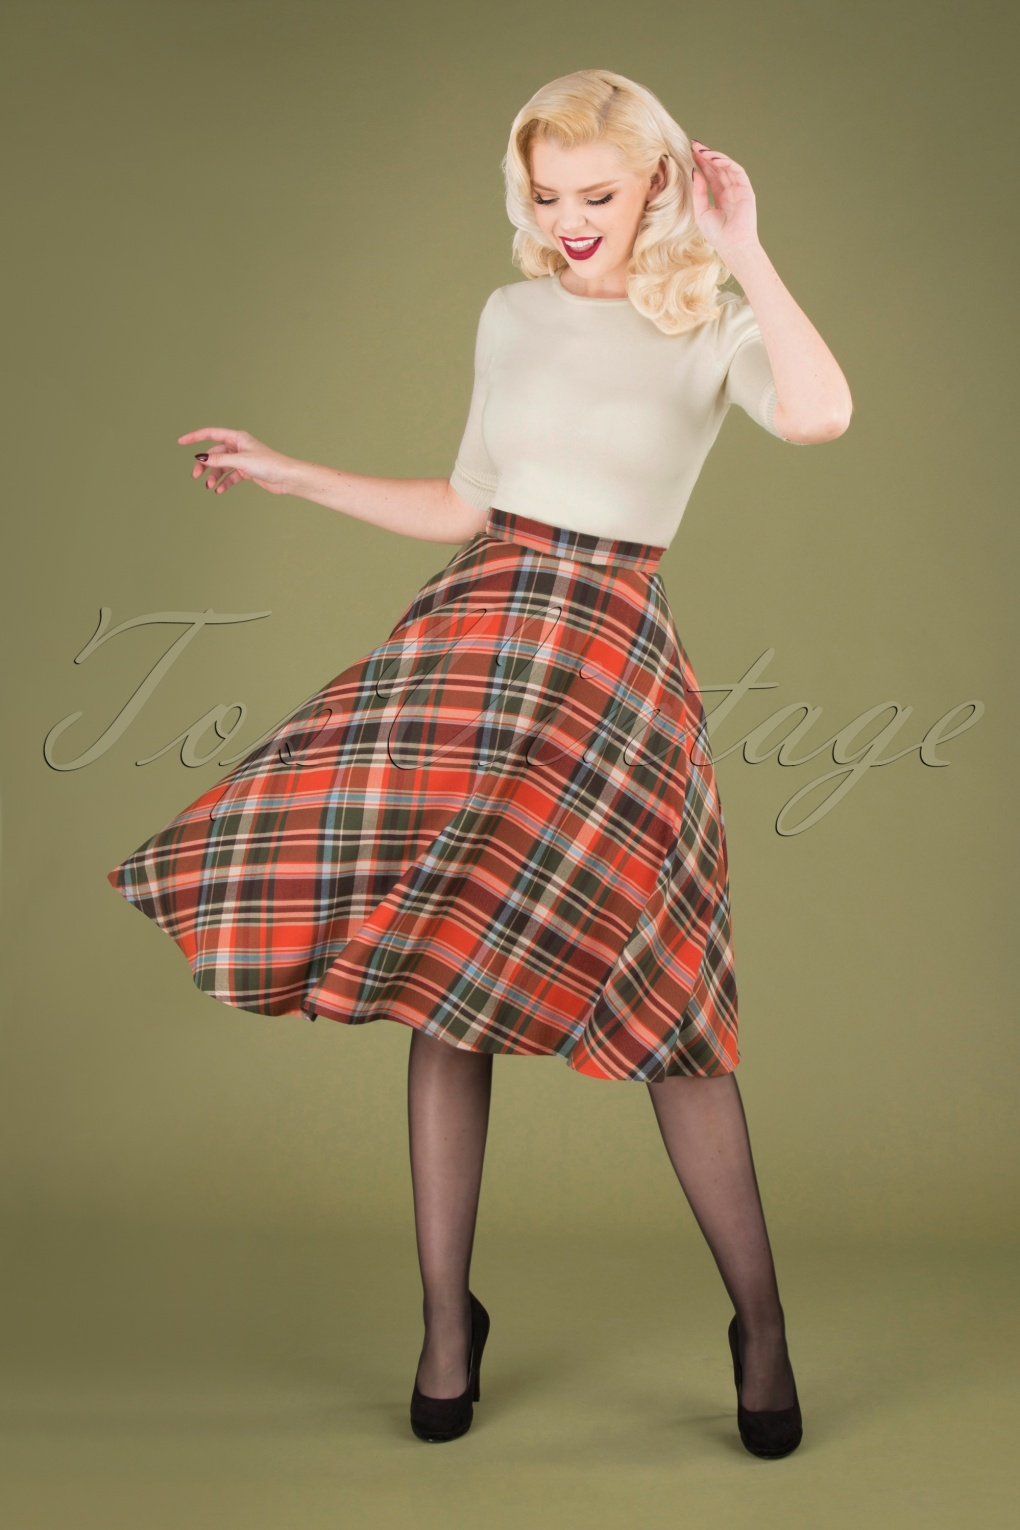 50s Skirt Styles | Poodle Skirts, Circle Skirts, Pencil Skirts 1950s 50s Oktober Tartan Swing Skirt in Orange £37.84 AT vintagedancer.com